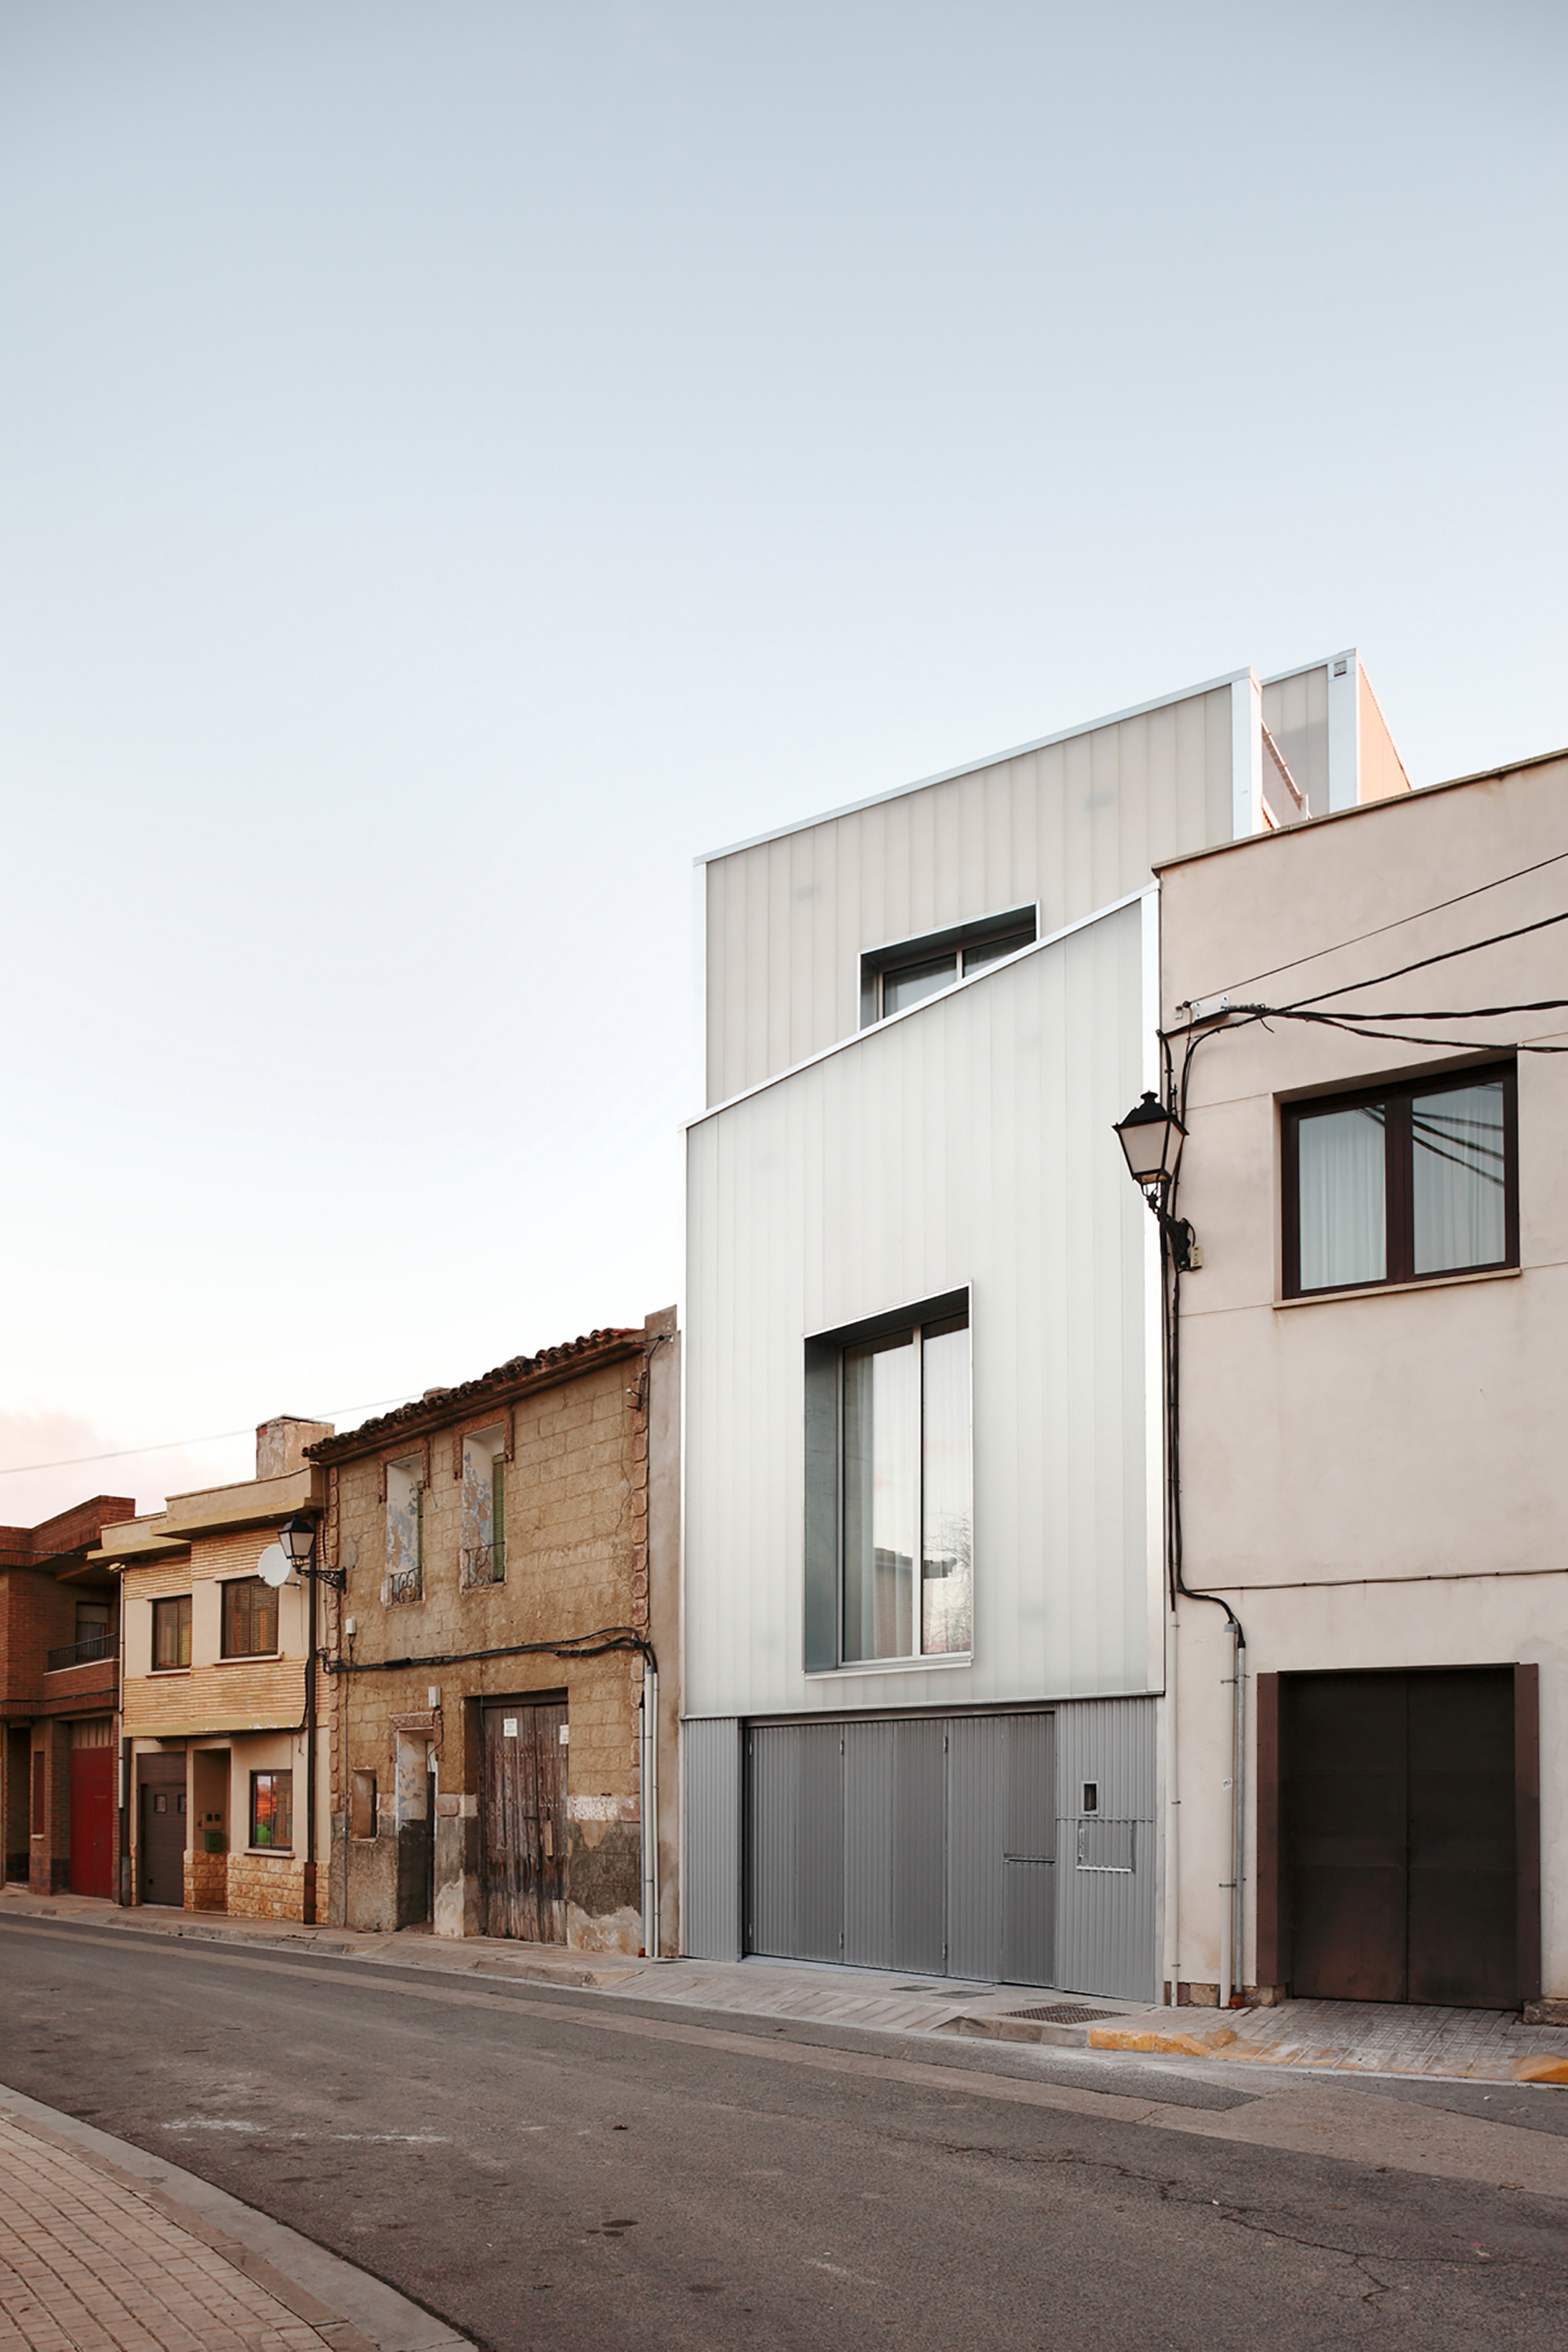 House # 20 / Rue Space (13)